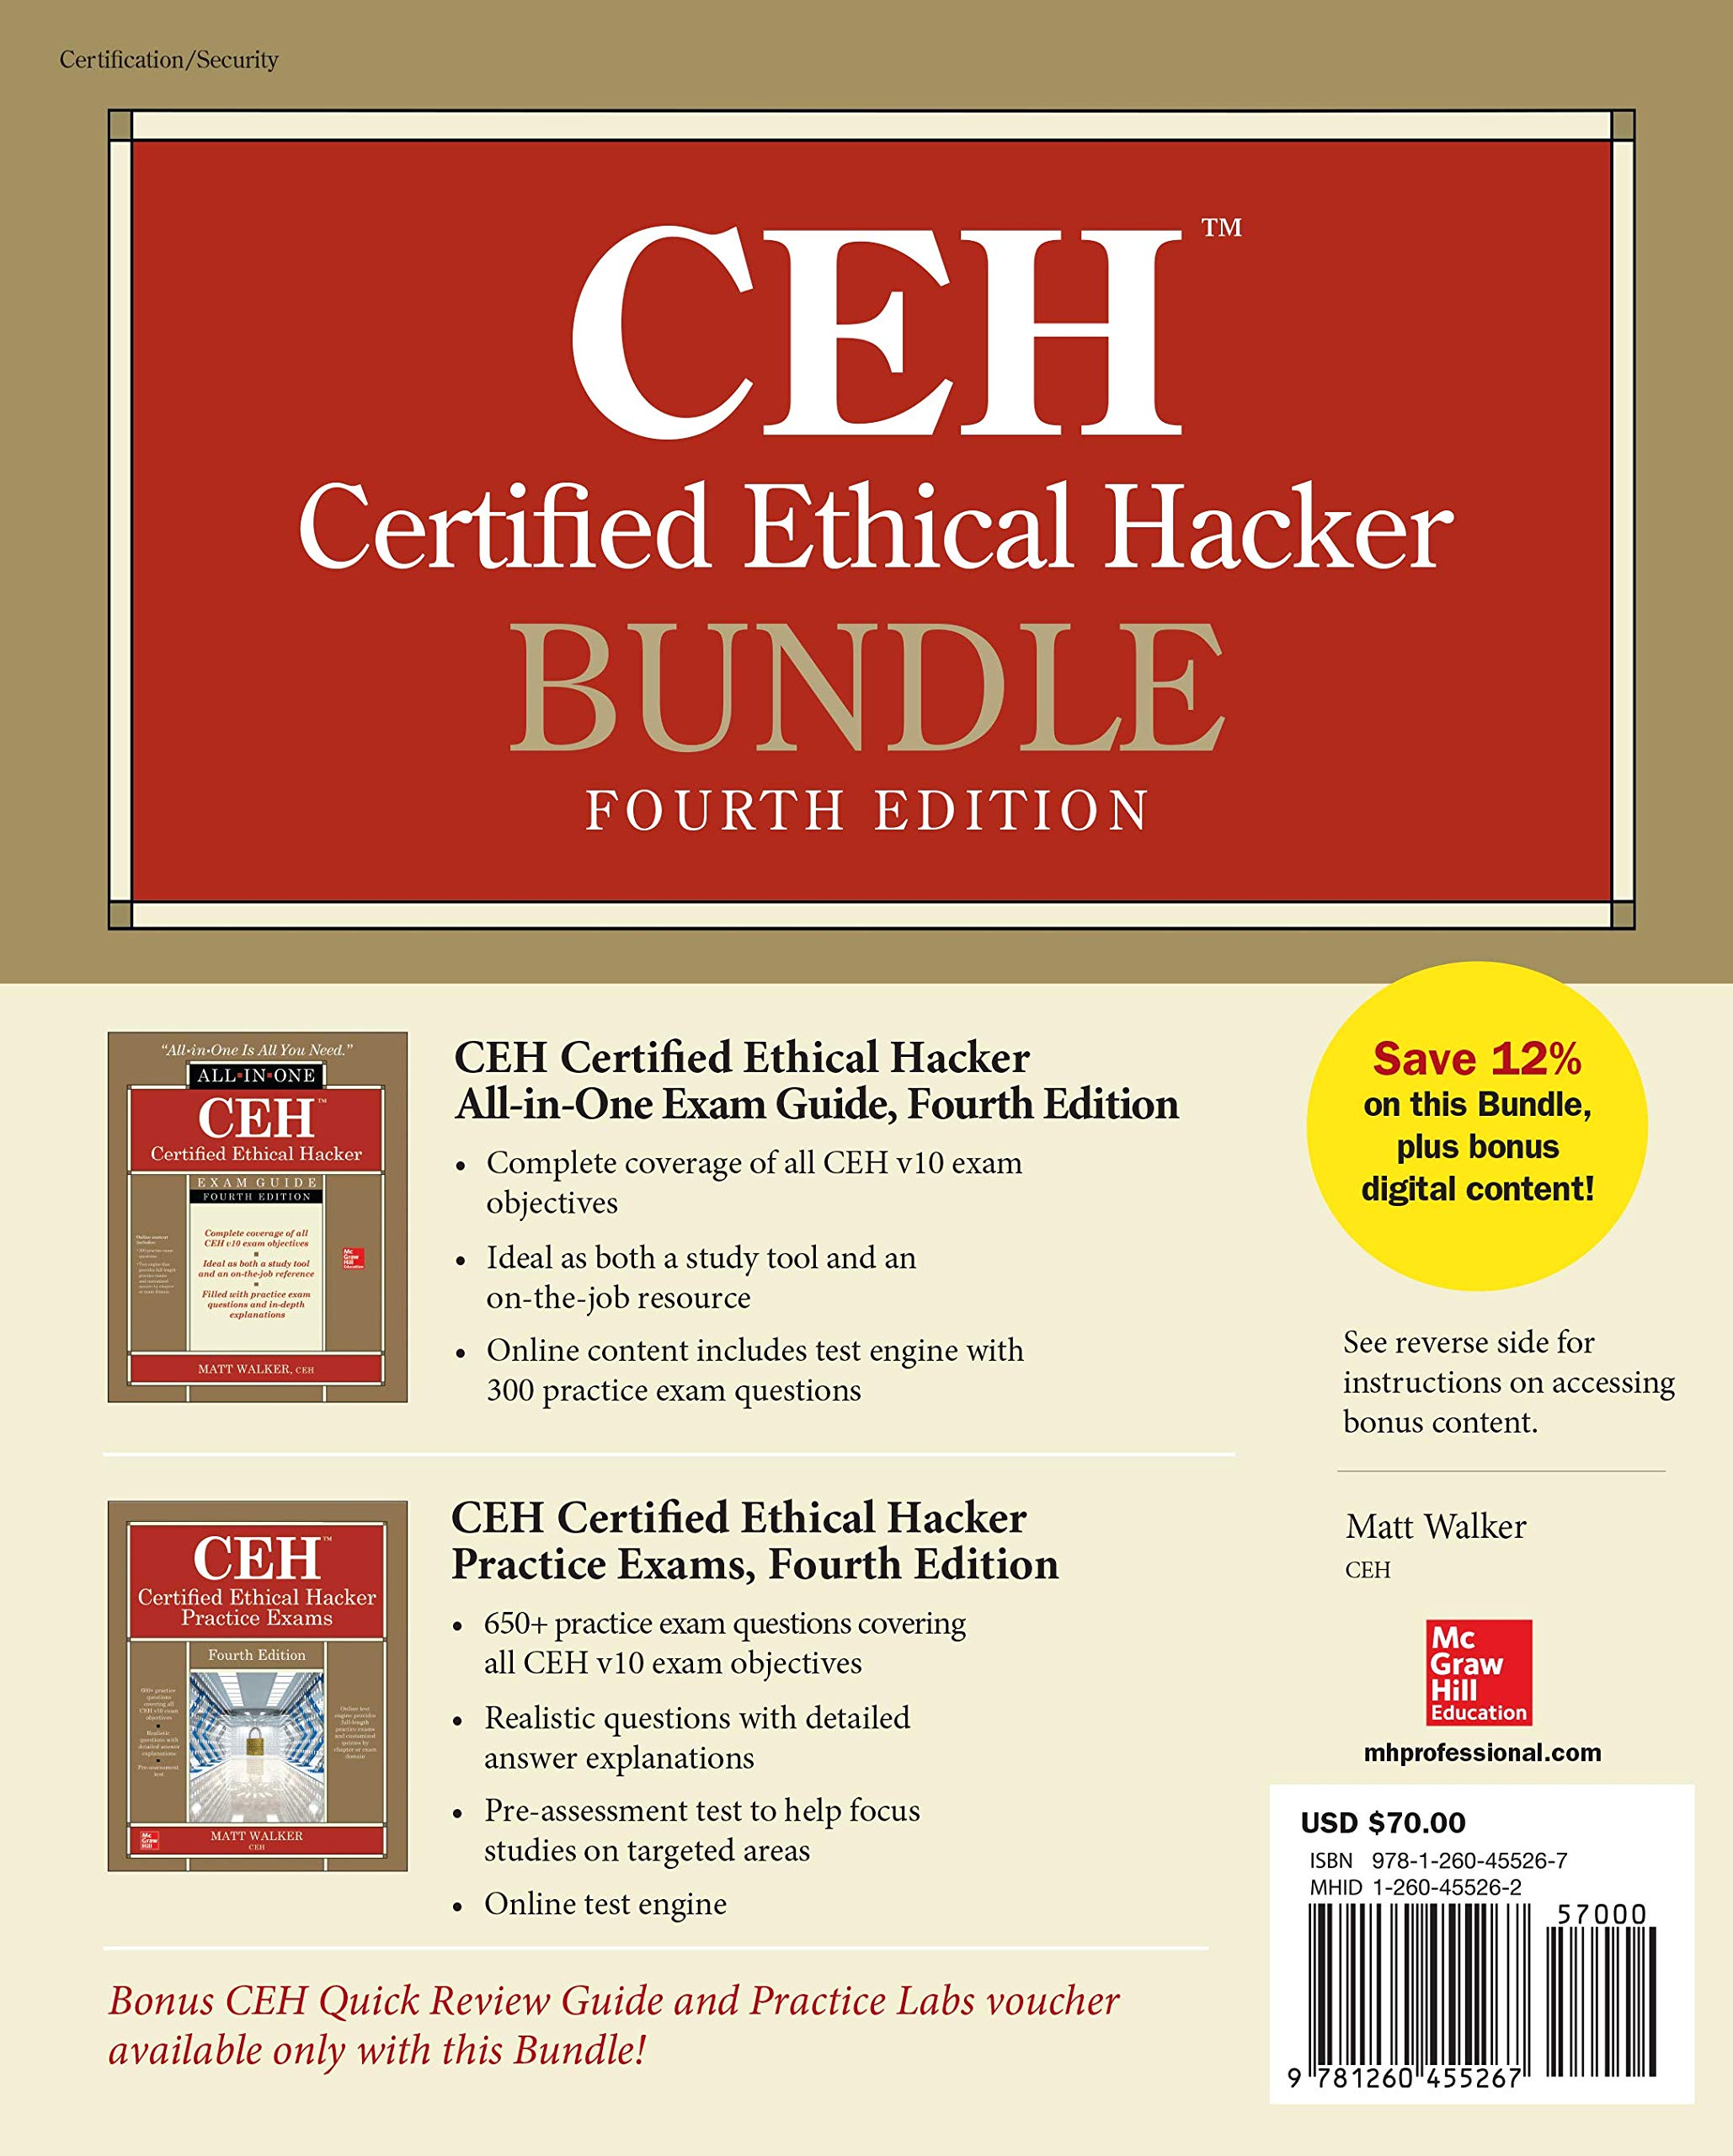 CEH Certified Ethical Hacker Bundle, Fourth Edition by McGraw-Hill Education